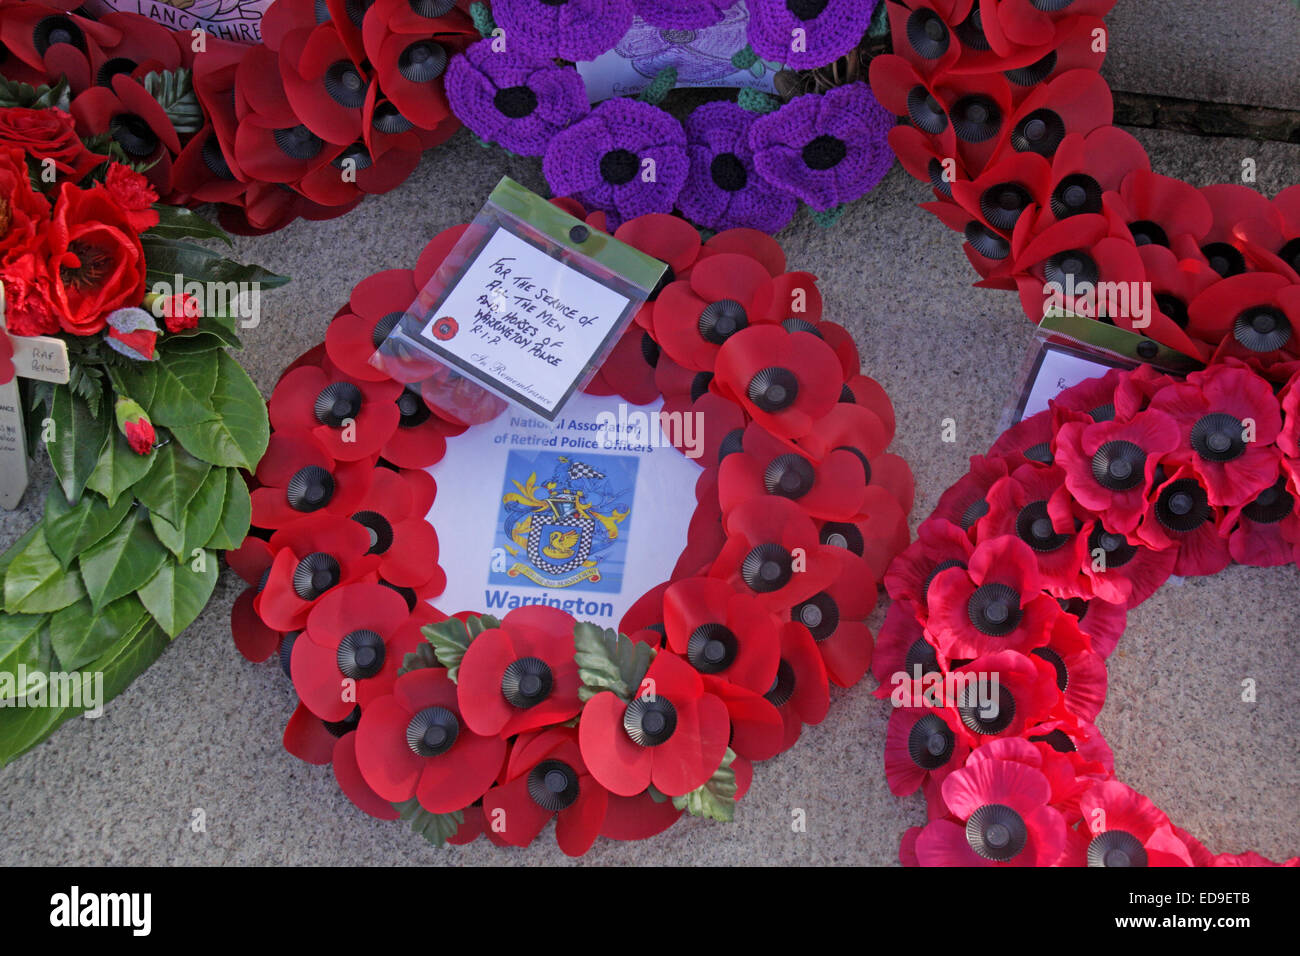 Remembrance day & Poppy wreaths Warrington Cenotaph Nov 2014, Bridgefoot, Wilderspool Causeway, Cheshire, England, - Stock Image